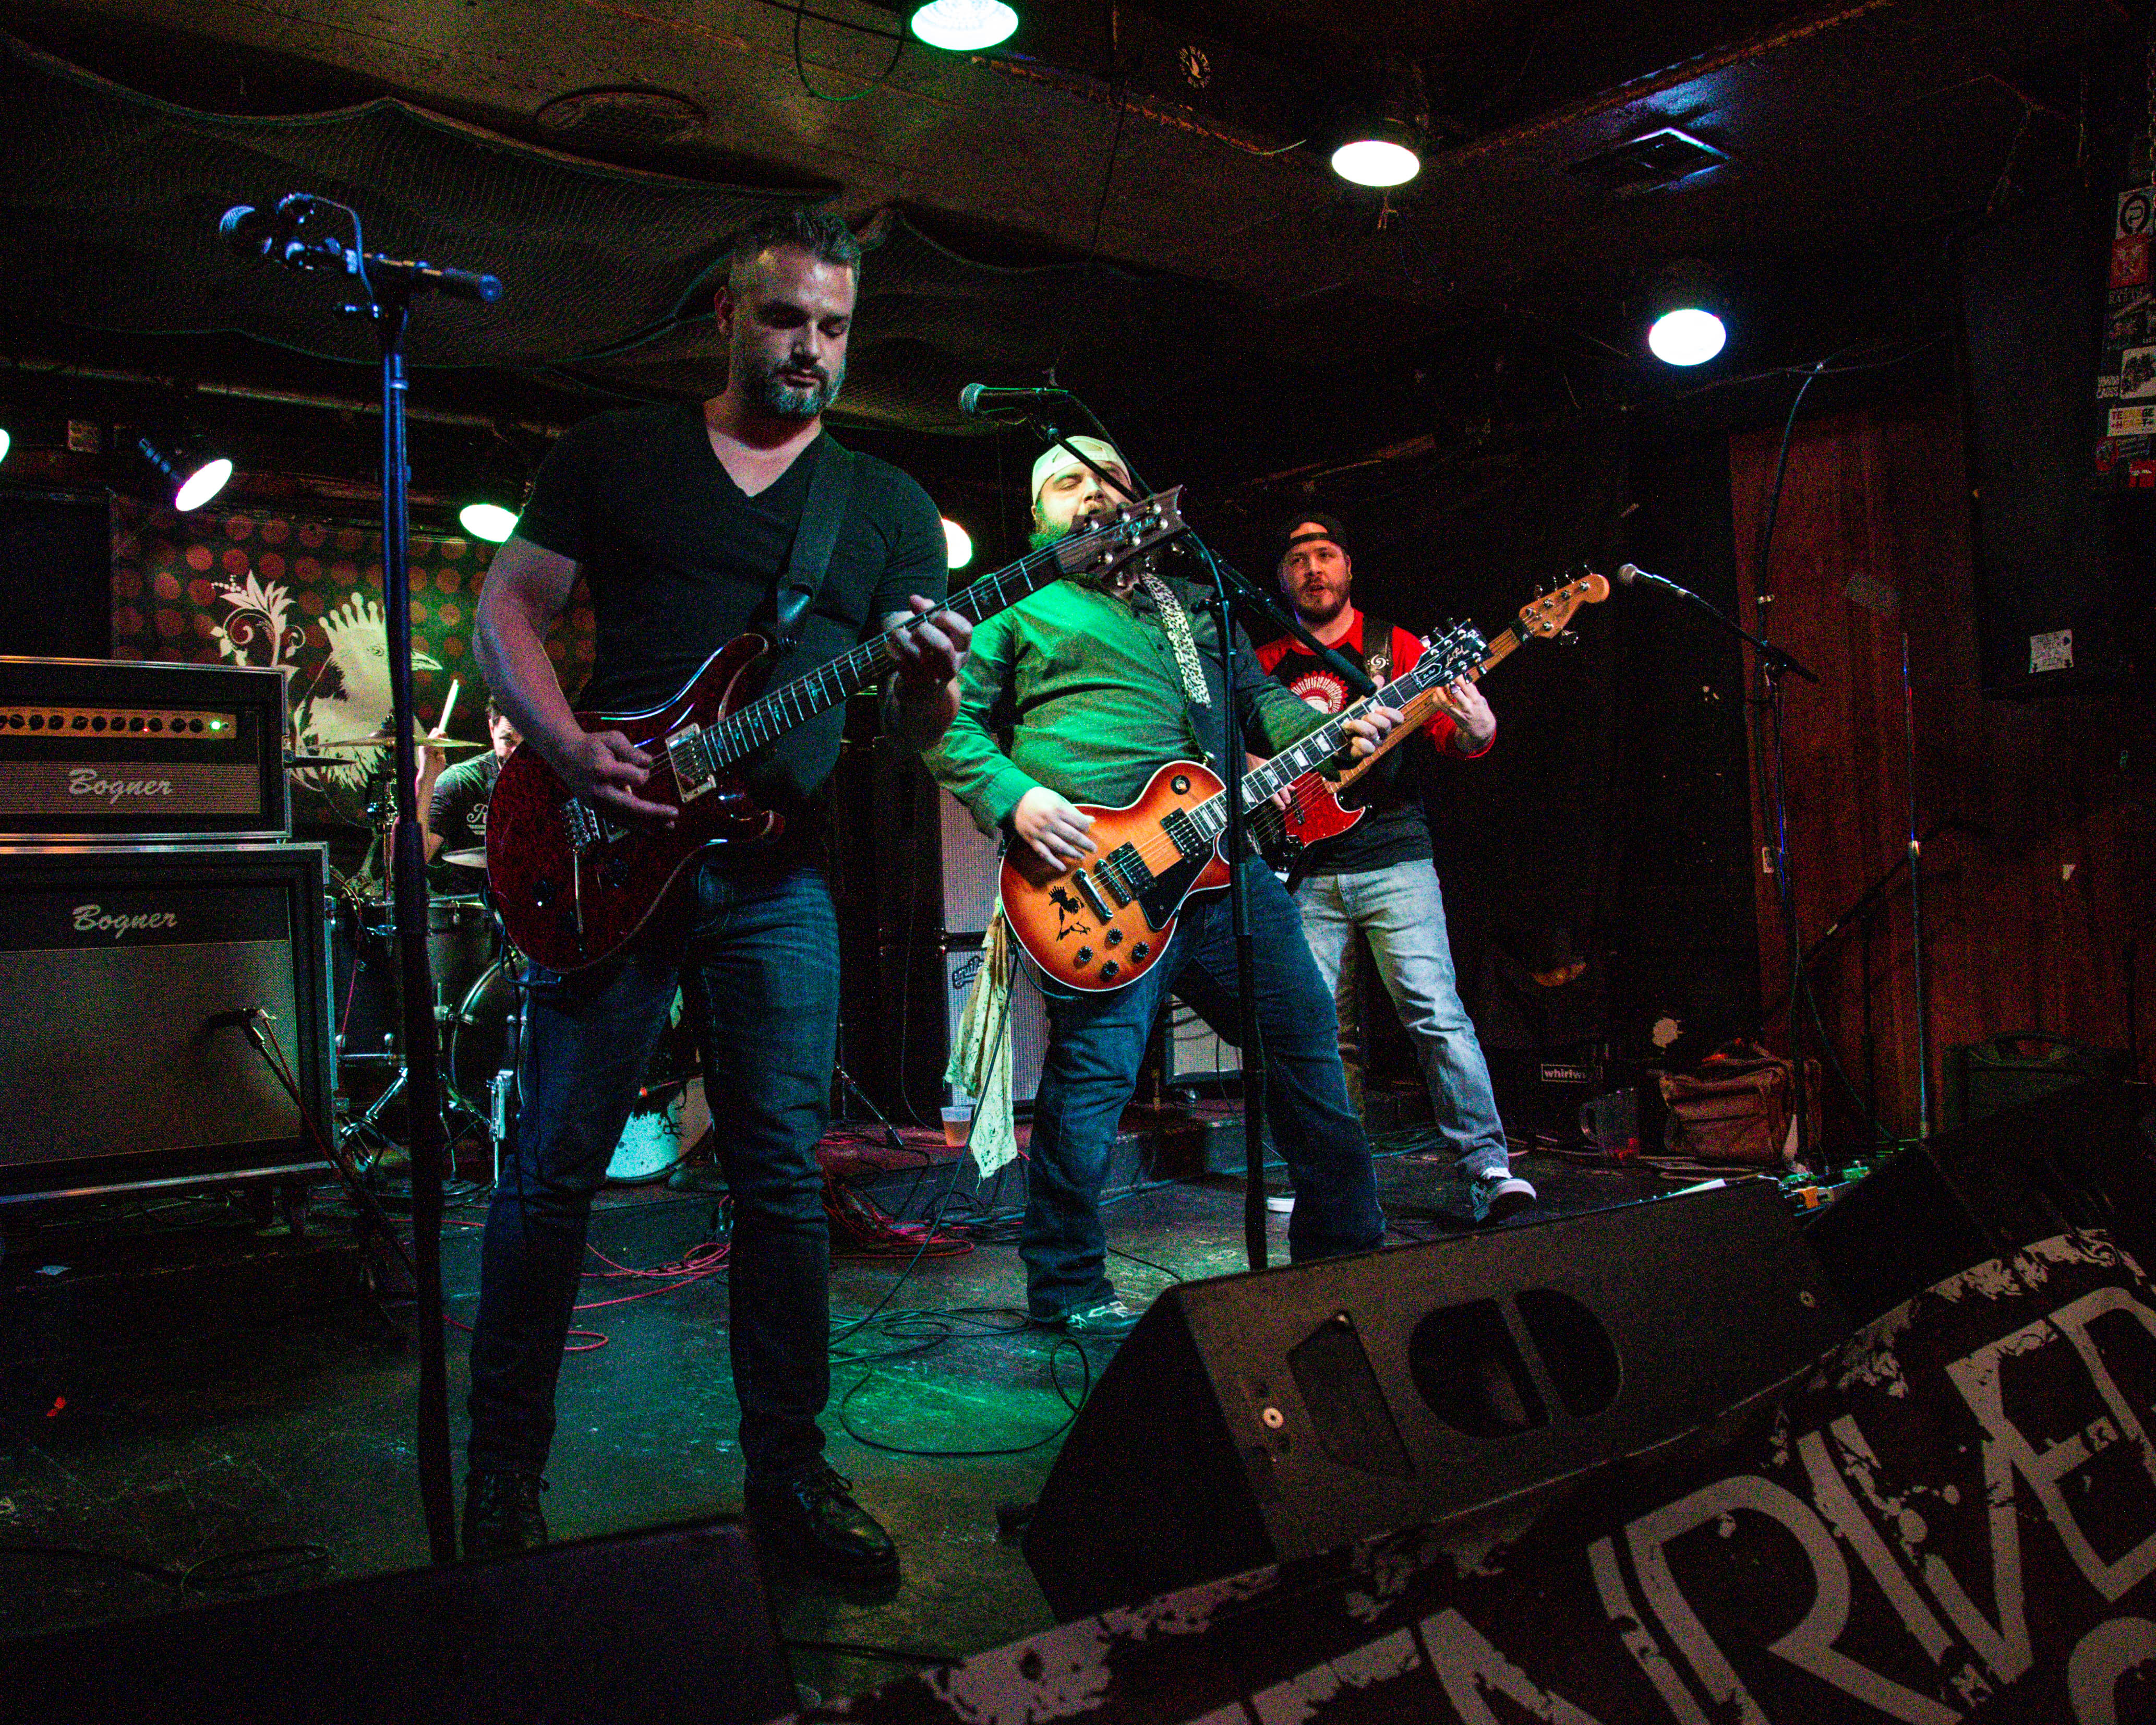 Green River Kings debuts sophomore album in KC